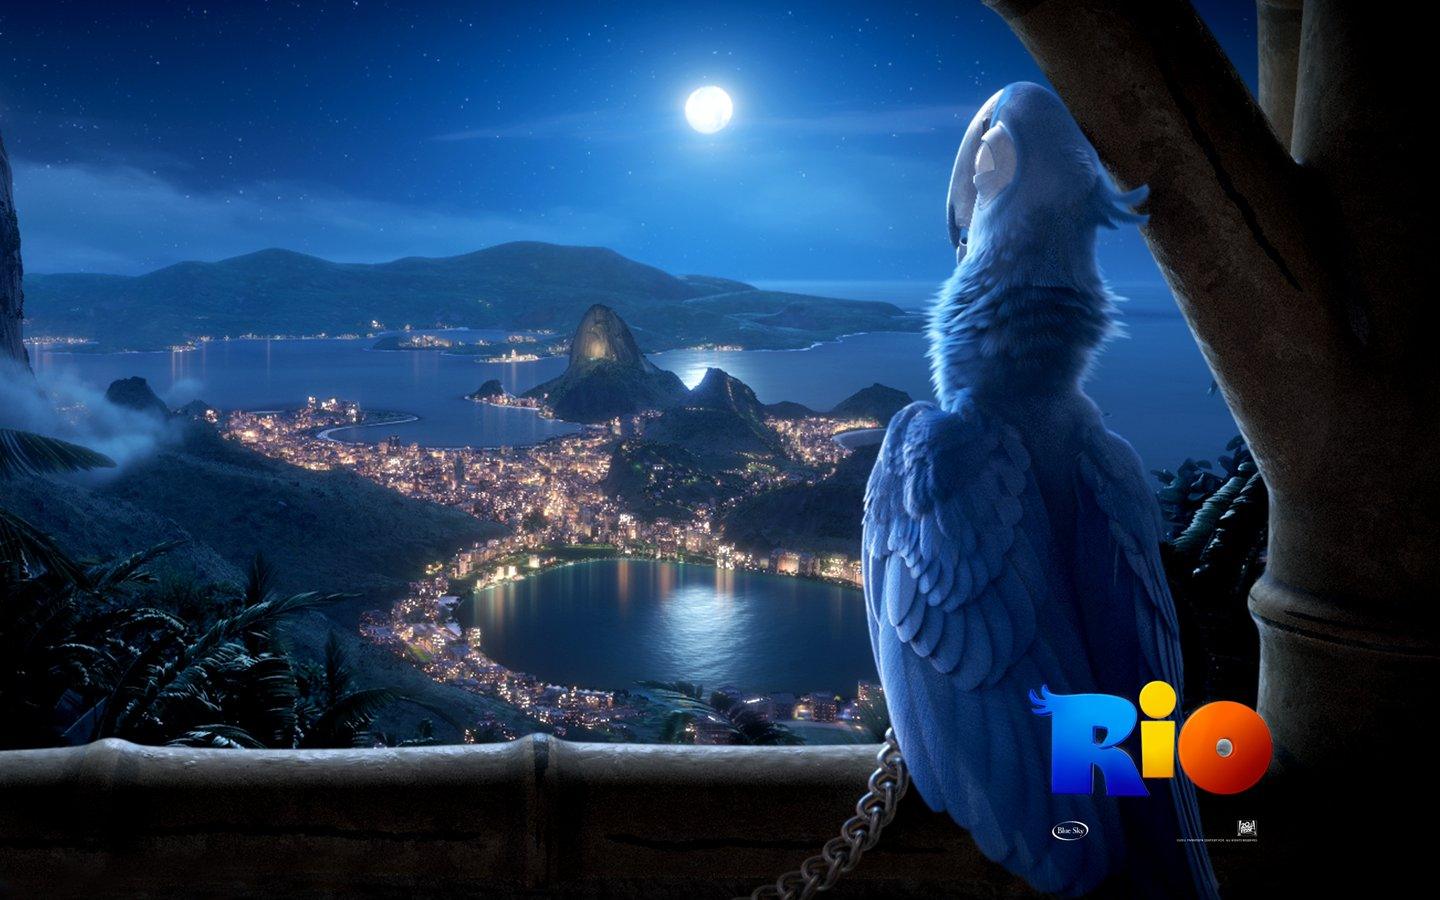 Rio Rio Adventure movie wallpaper 29210